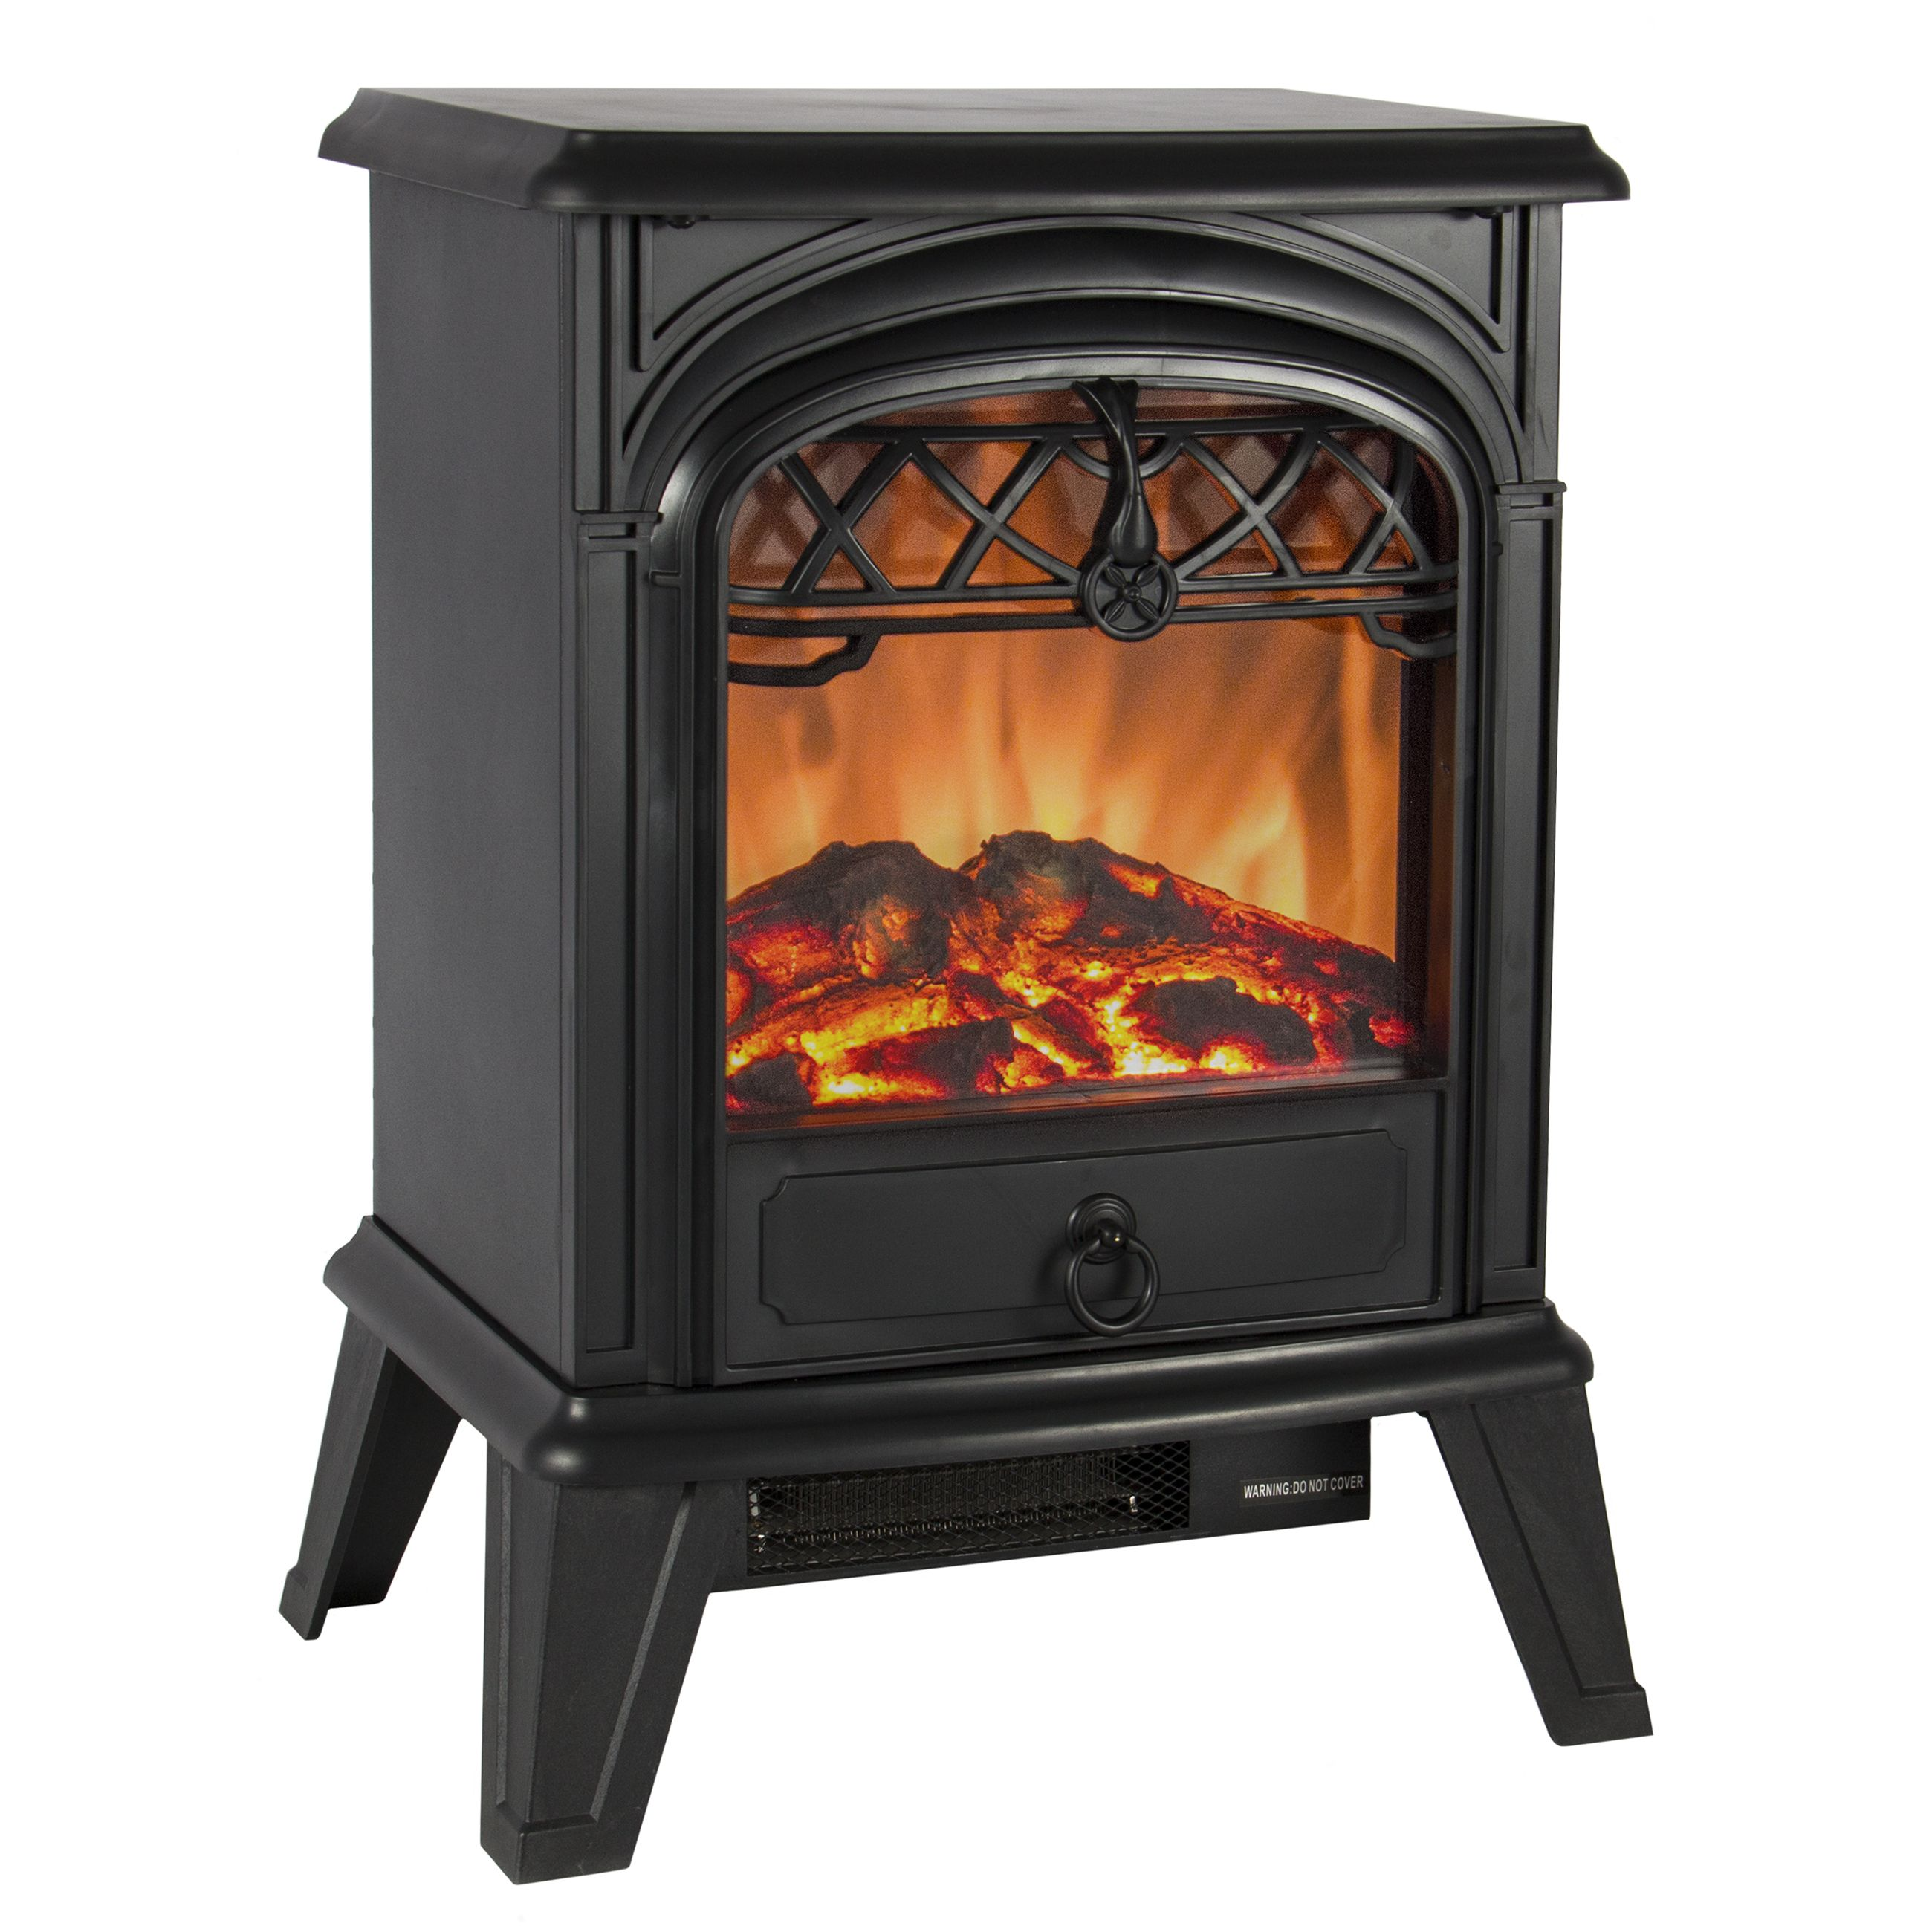 1500W Free Standing Electric Fireplace Heater Fire Stove Flame Wood Log  Portable Image 1 Of 5